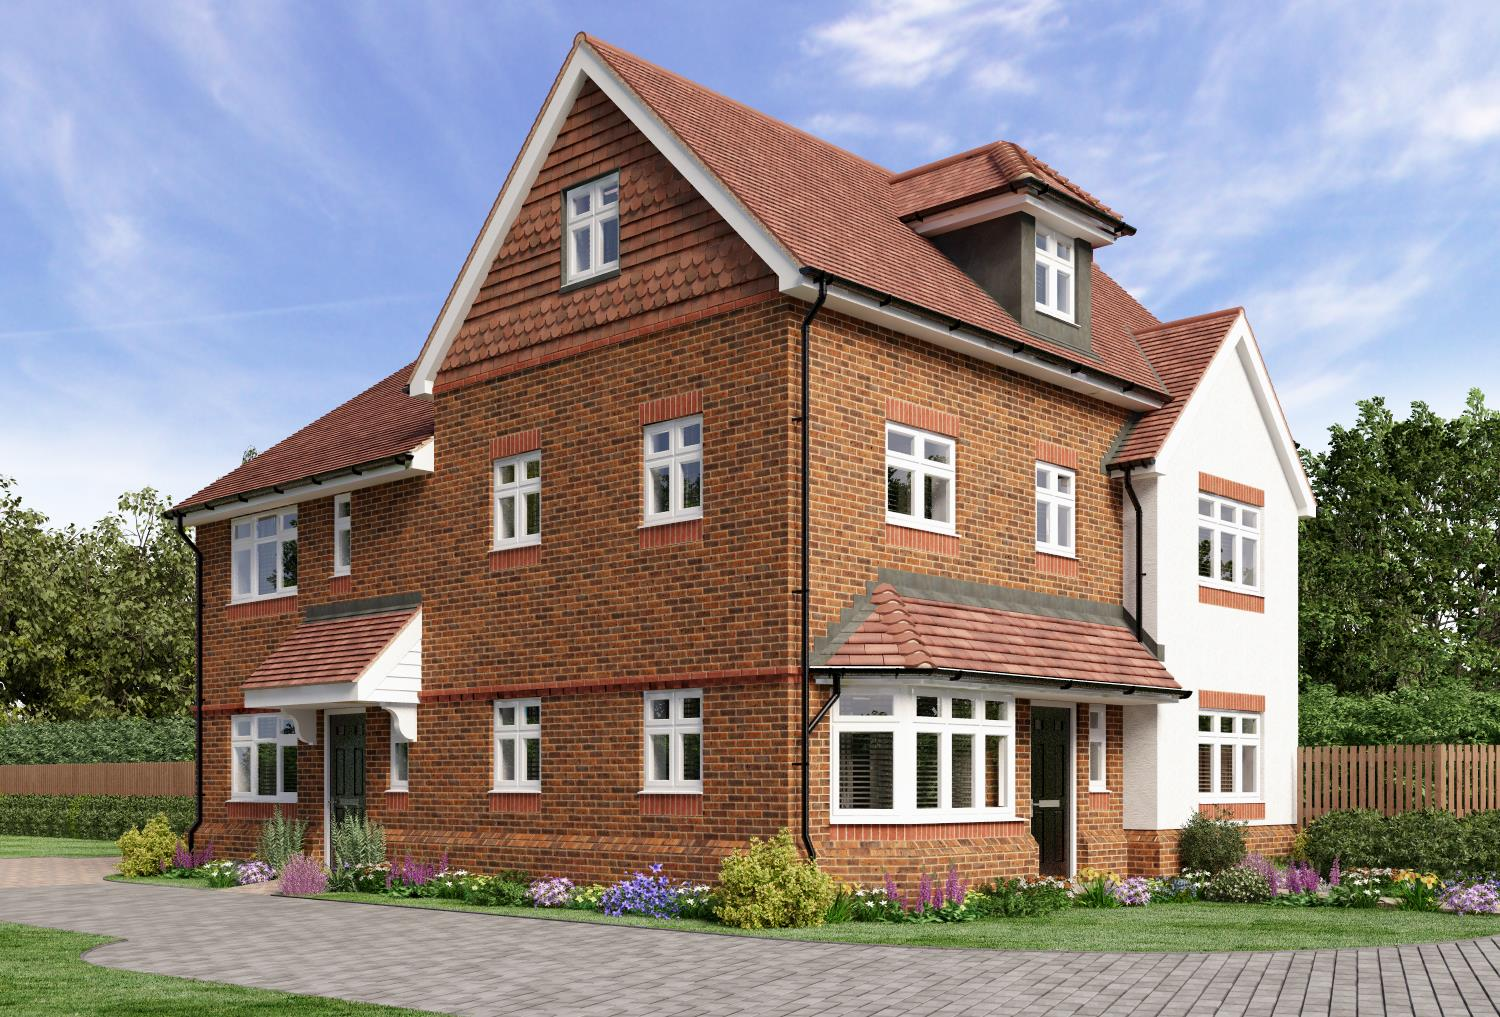 2 Bedrooms Semi Detached House for sale in Hookwood, Horley